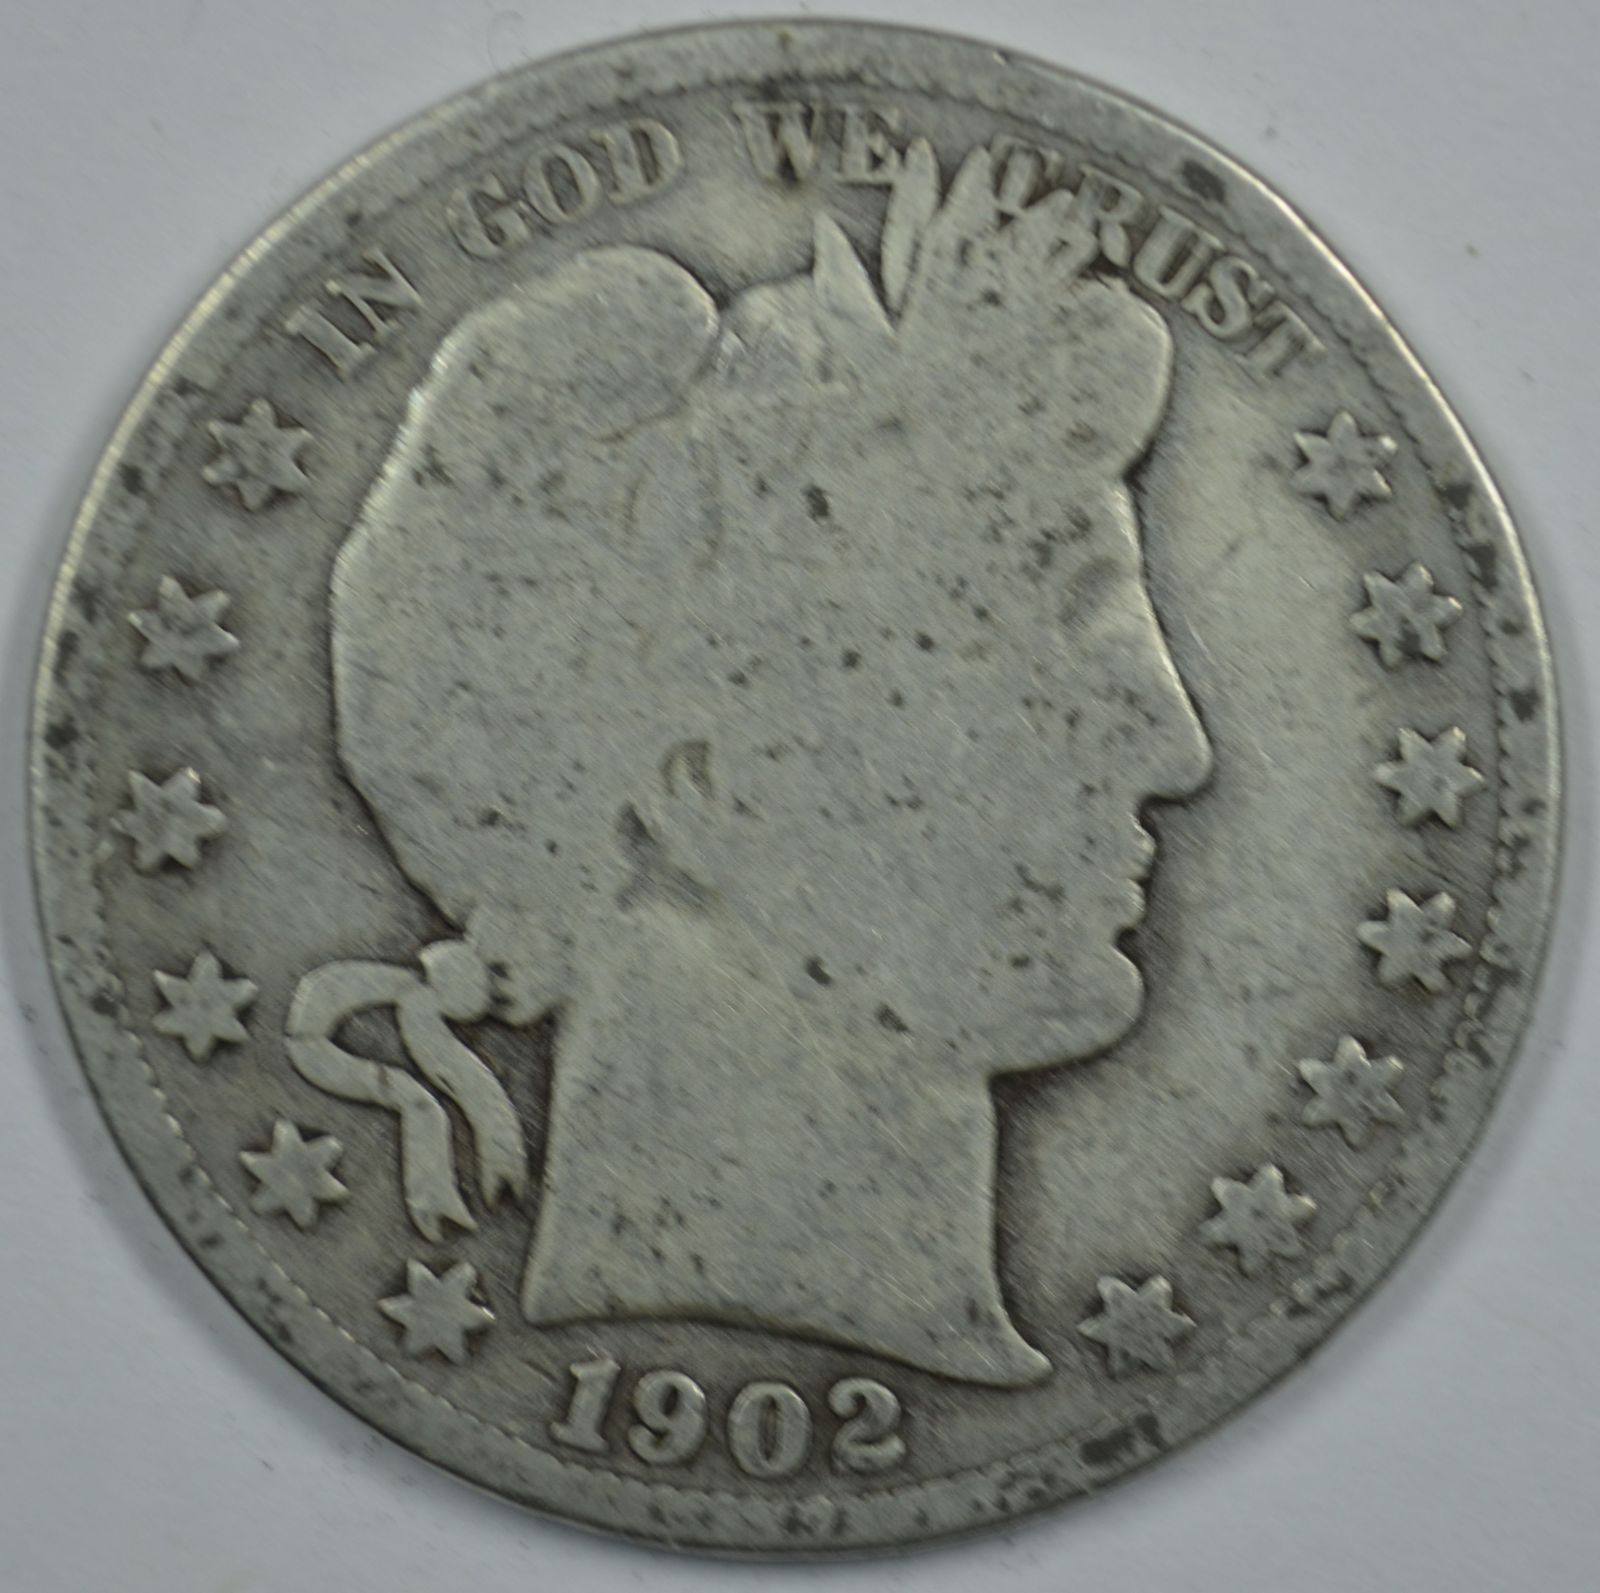 Primary image for 1902 S Barber circulated silver half